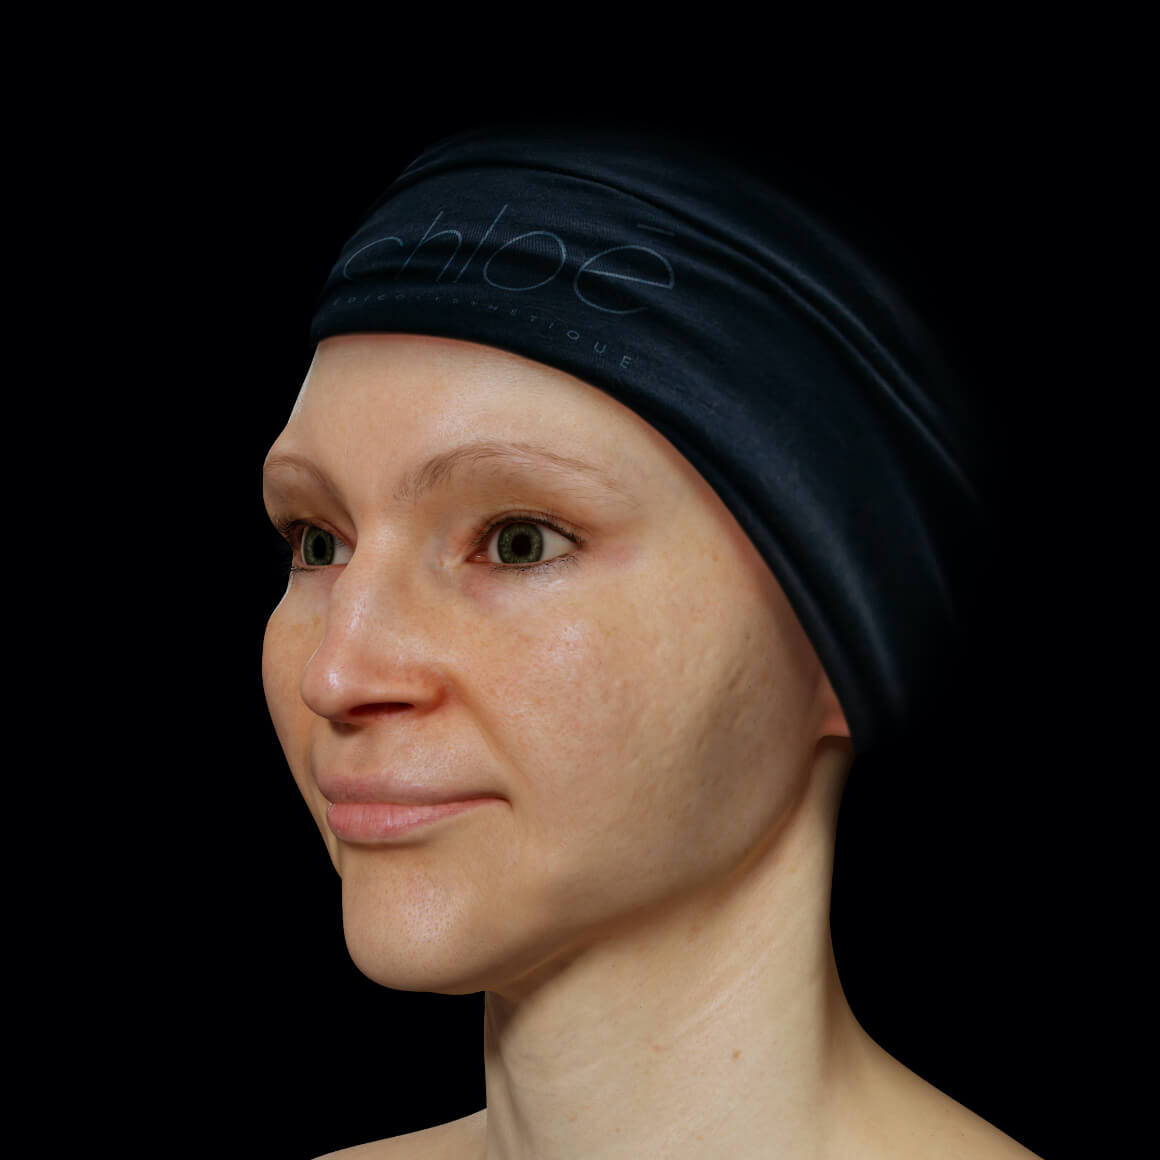 Female patient from Clinique Chloé at an angle after fractional laser treatments to treat facial acne scars